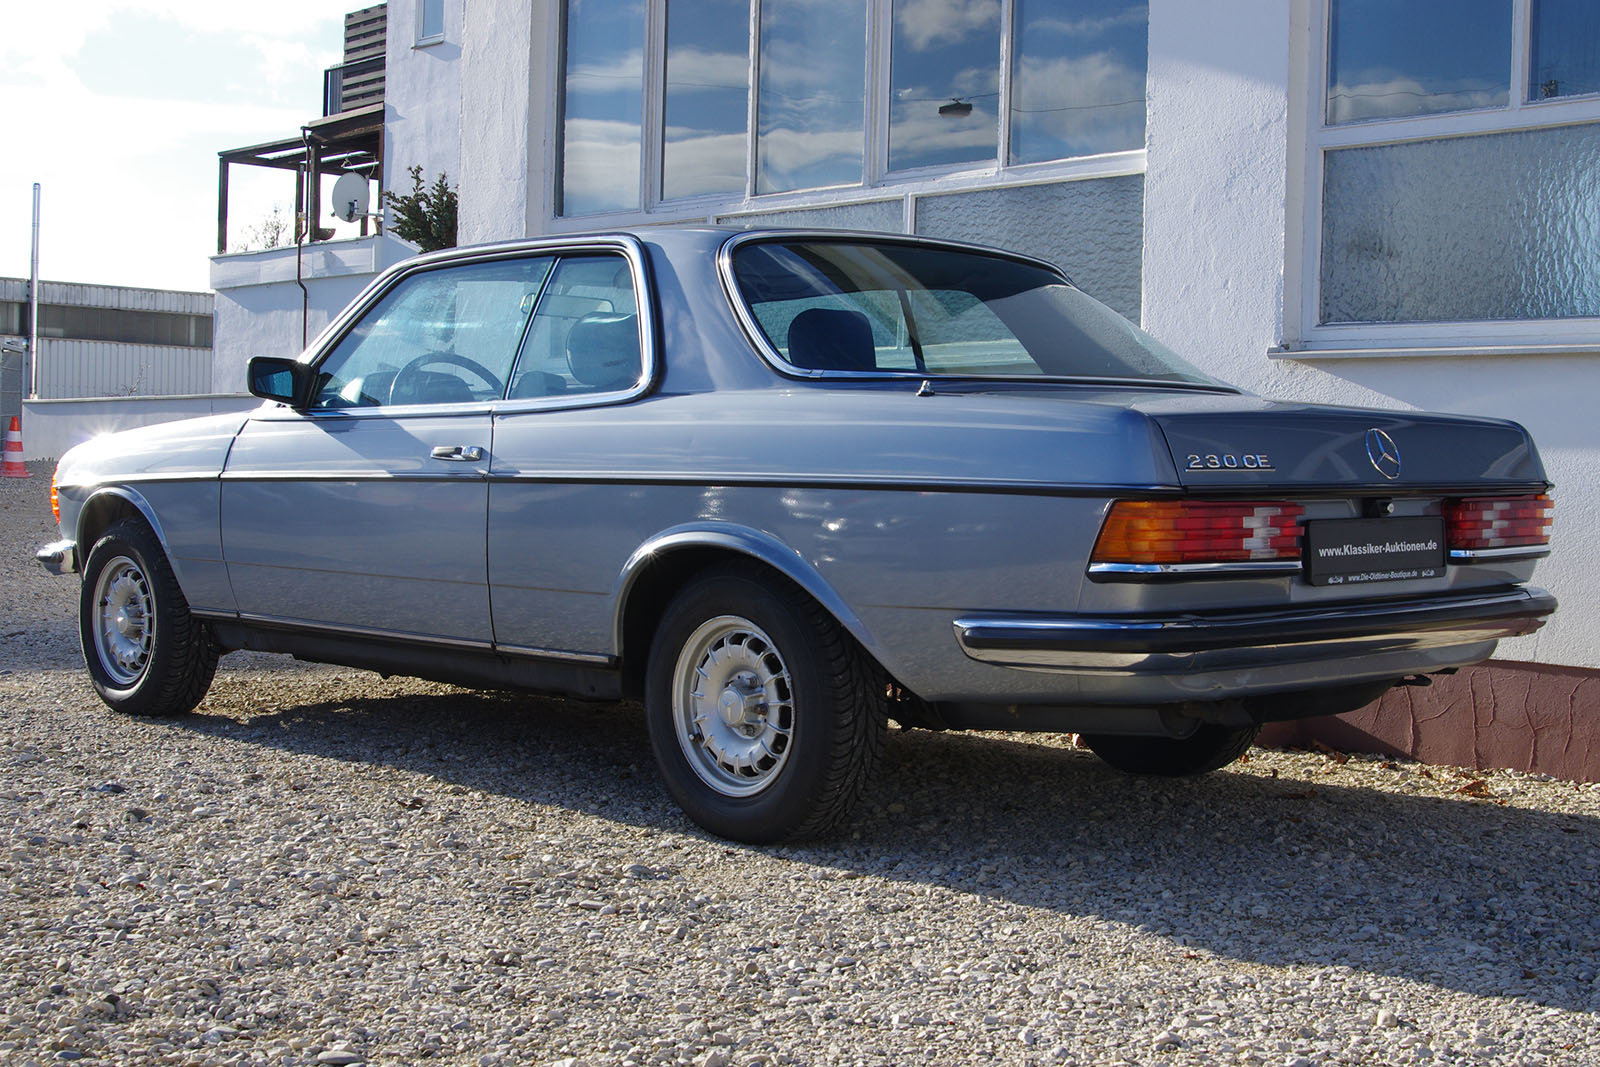 1983 Mercedes-Benz 230 CE - C123 - LHD - only 3 owners in 35 year For Sale (picture 3 of 6)